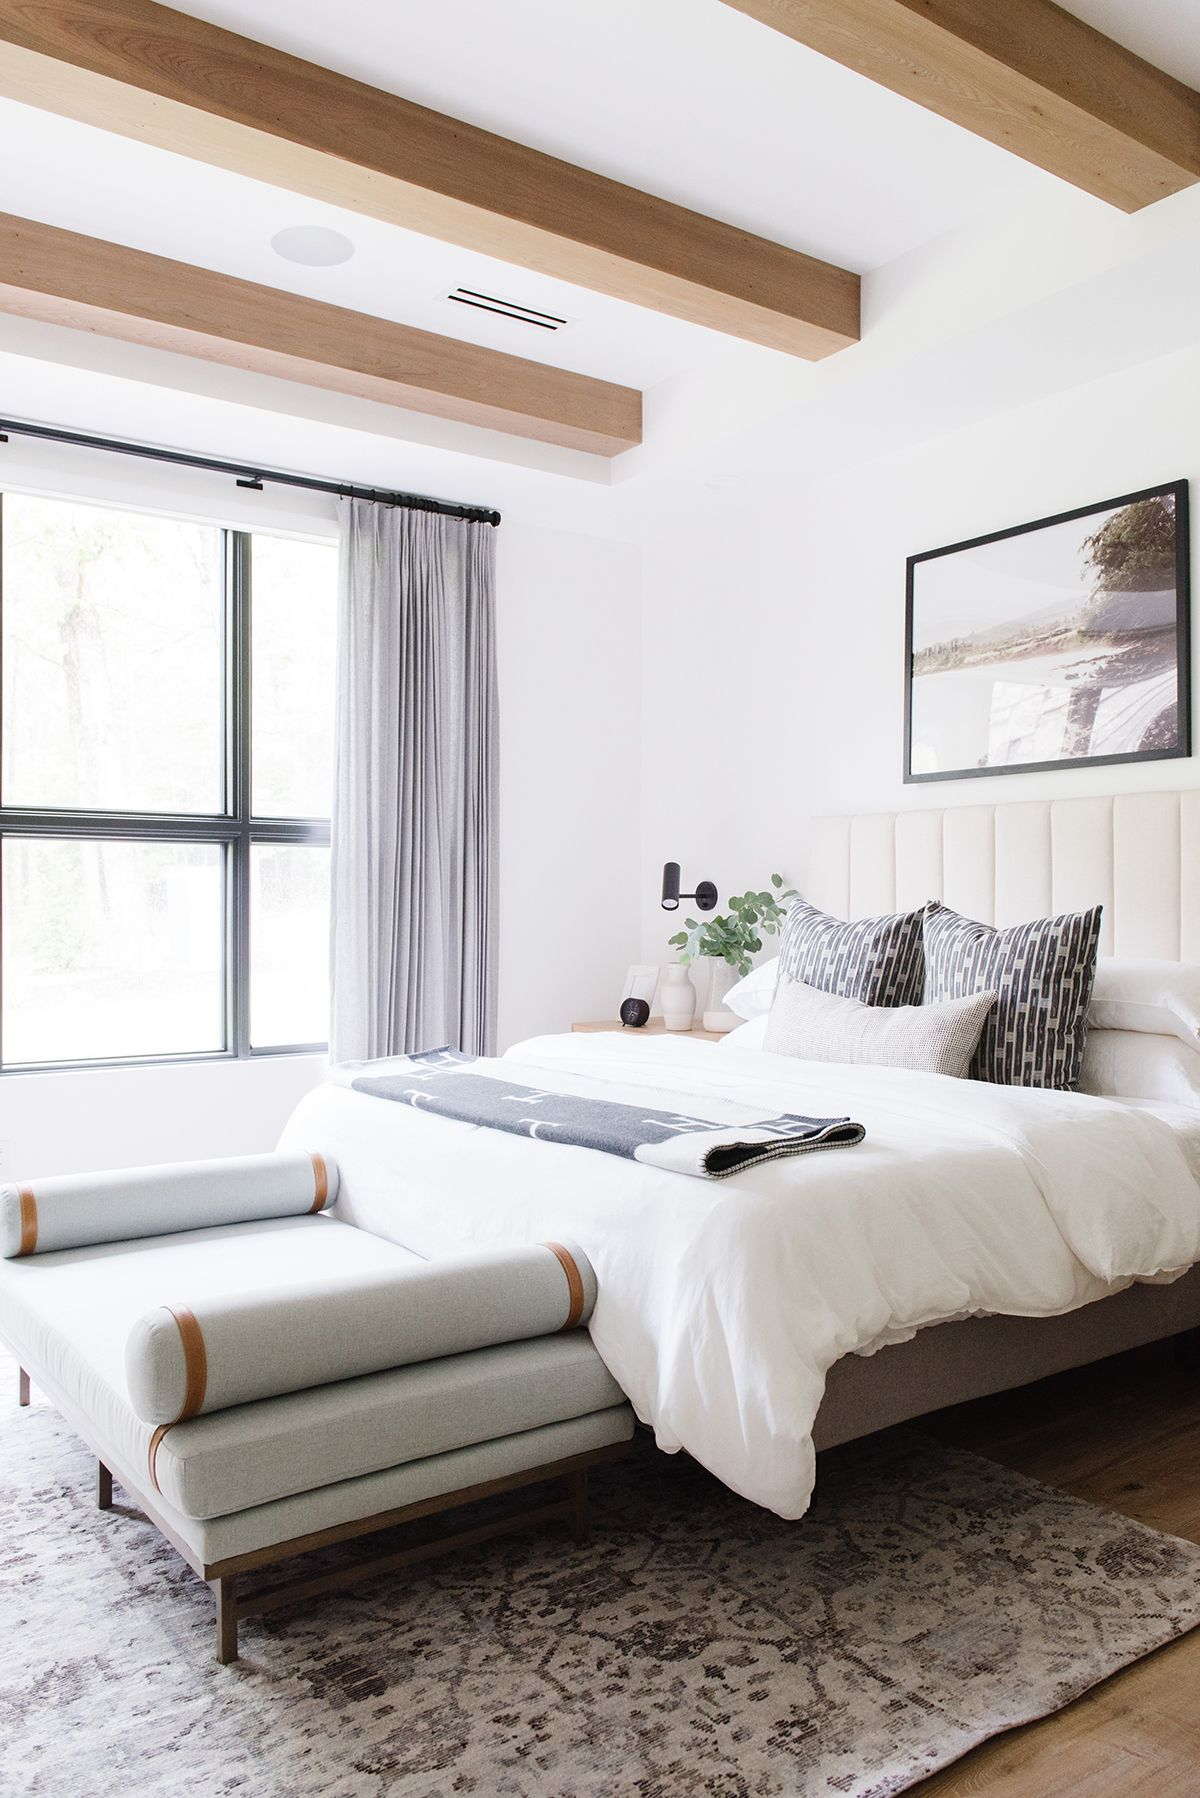 Modern Lake House Photo Tour: The Bedroom Wing